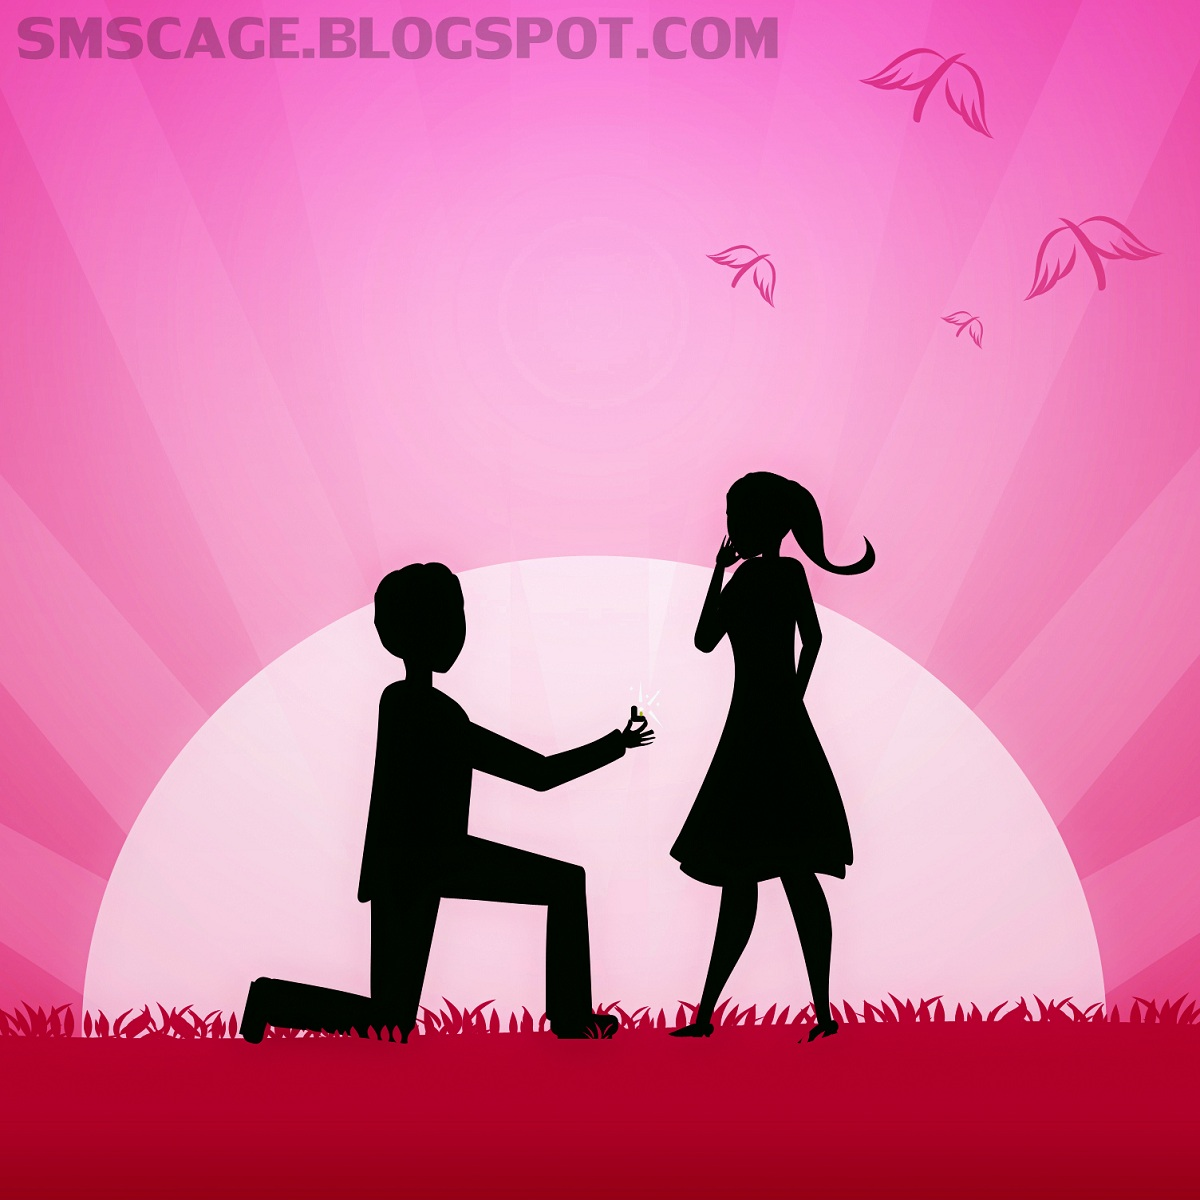 HINDI SMS To Propose A Girl